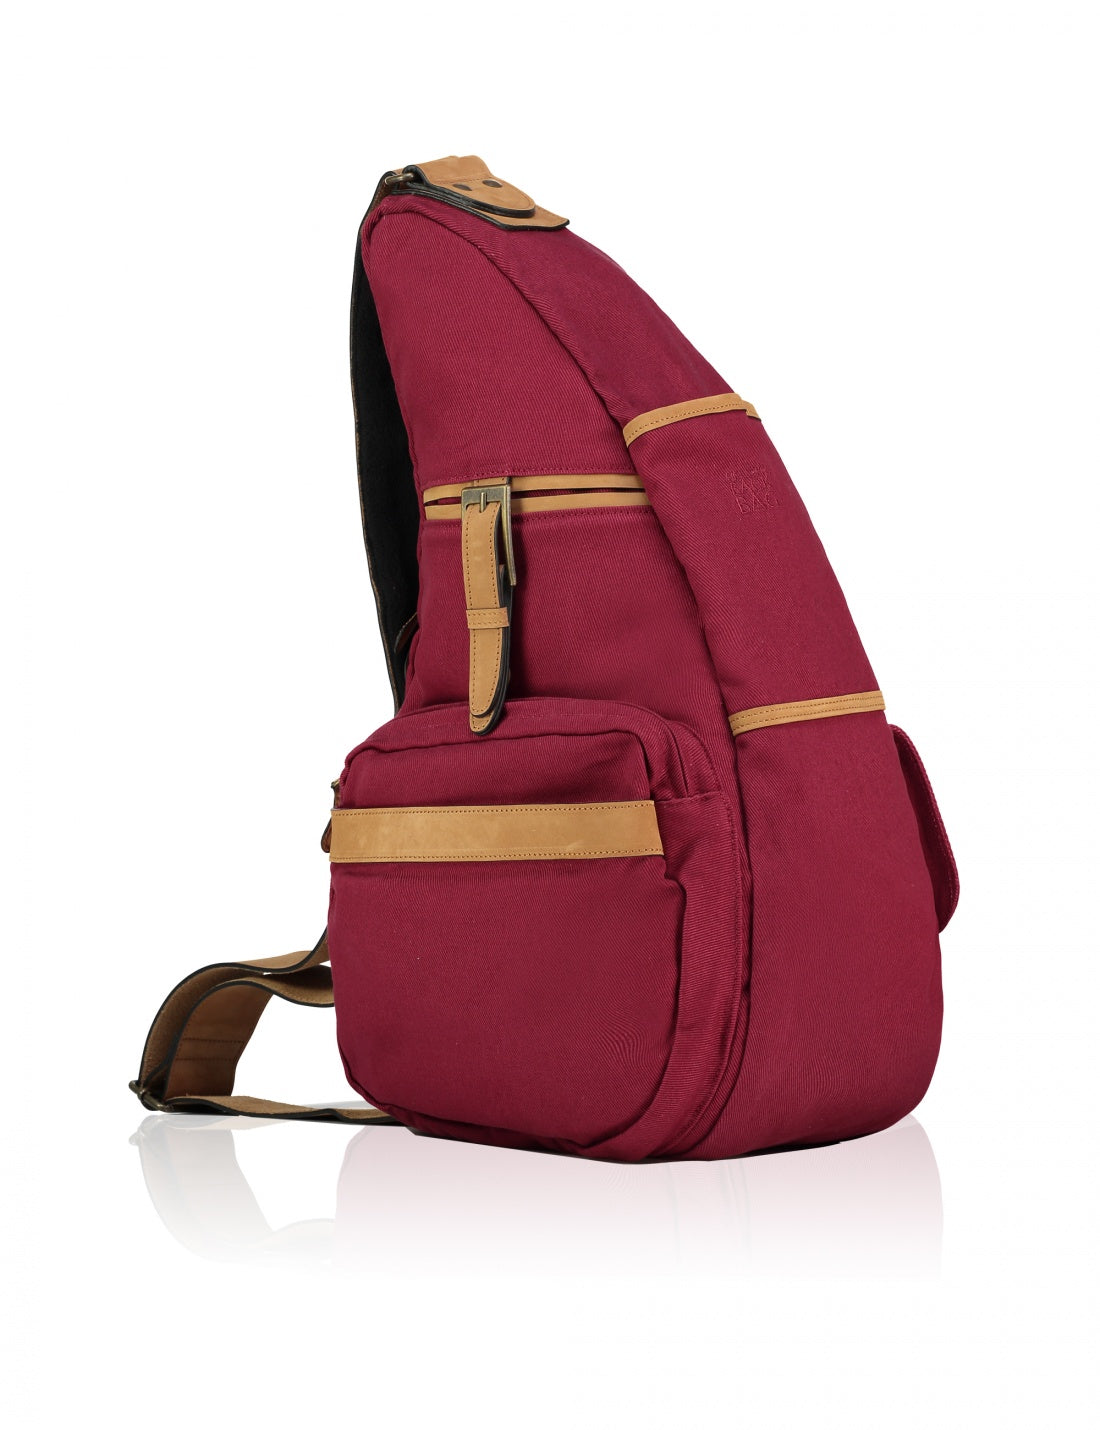 Healthy Back Bag Expedition Bag in Burgundy